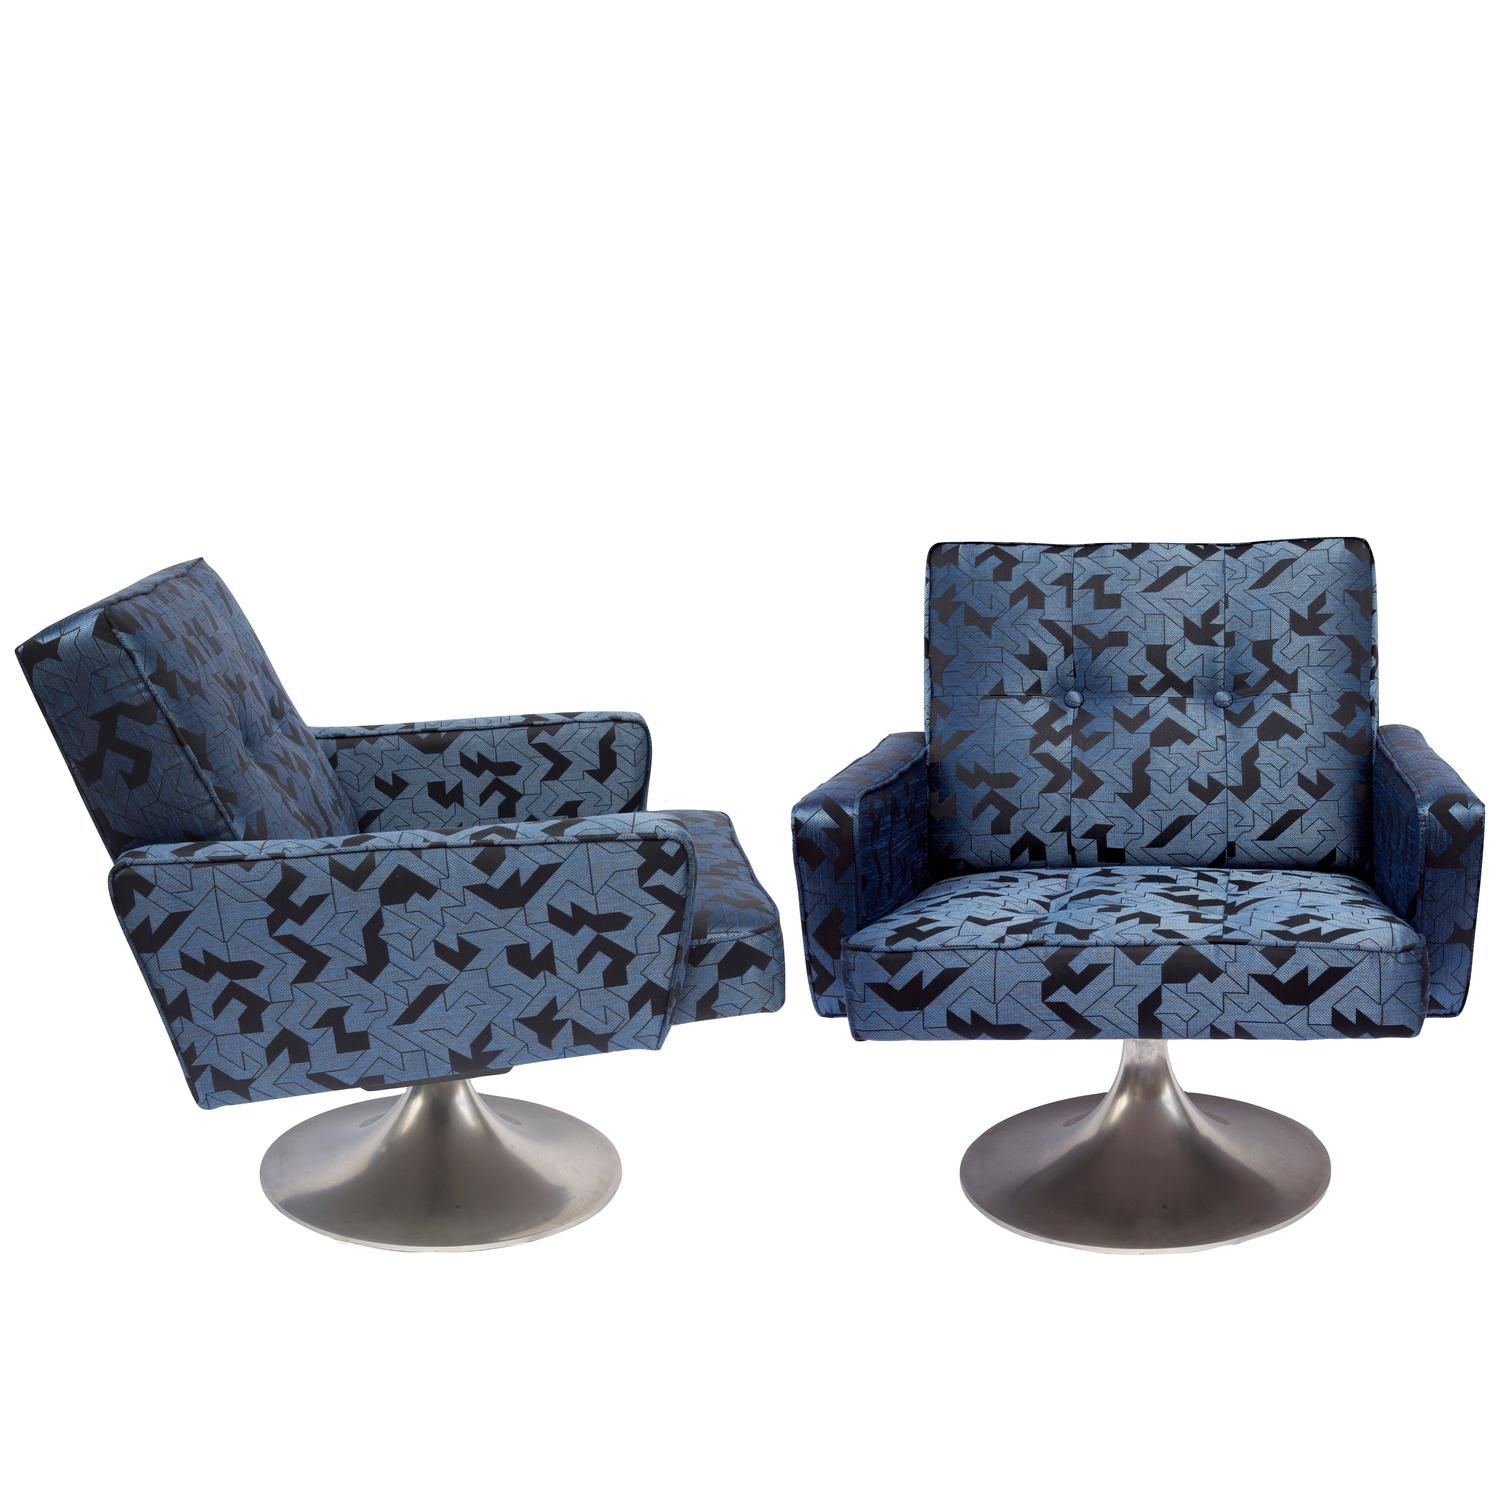 Pair of 1970s swivel chairs upholstered in nobilis origami